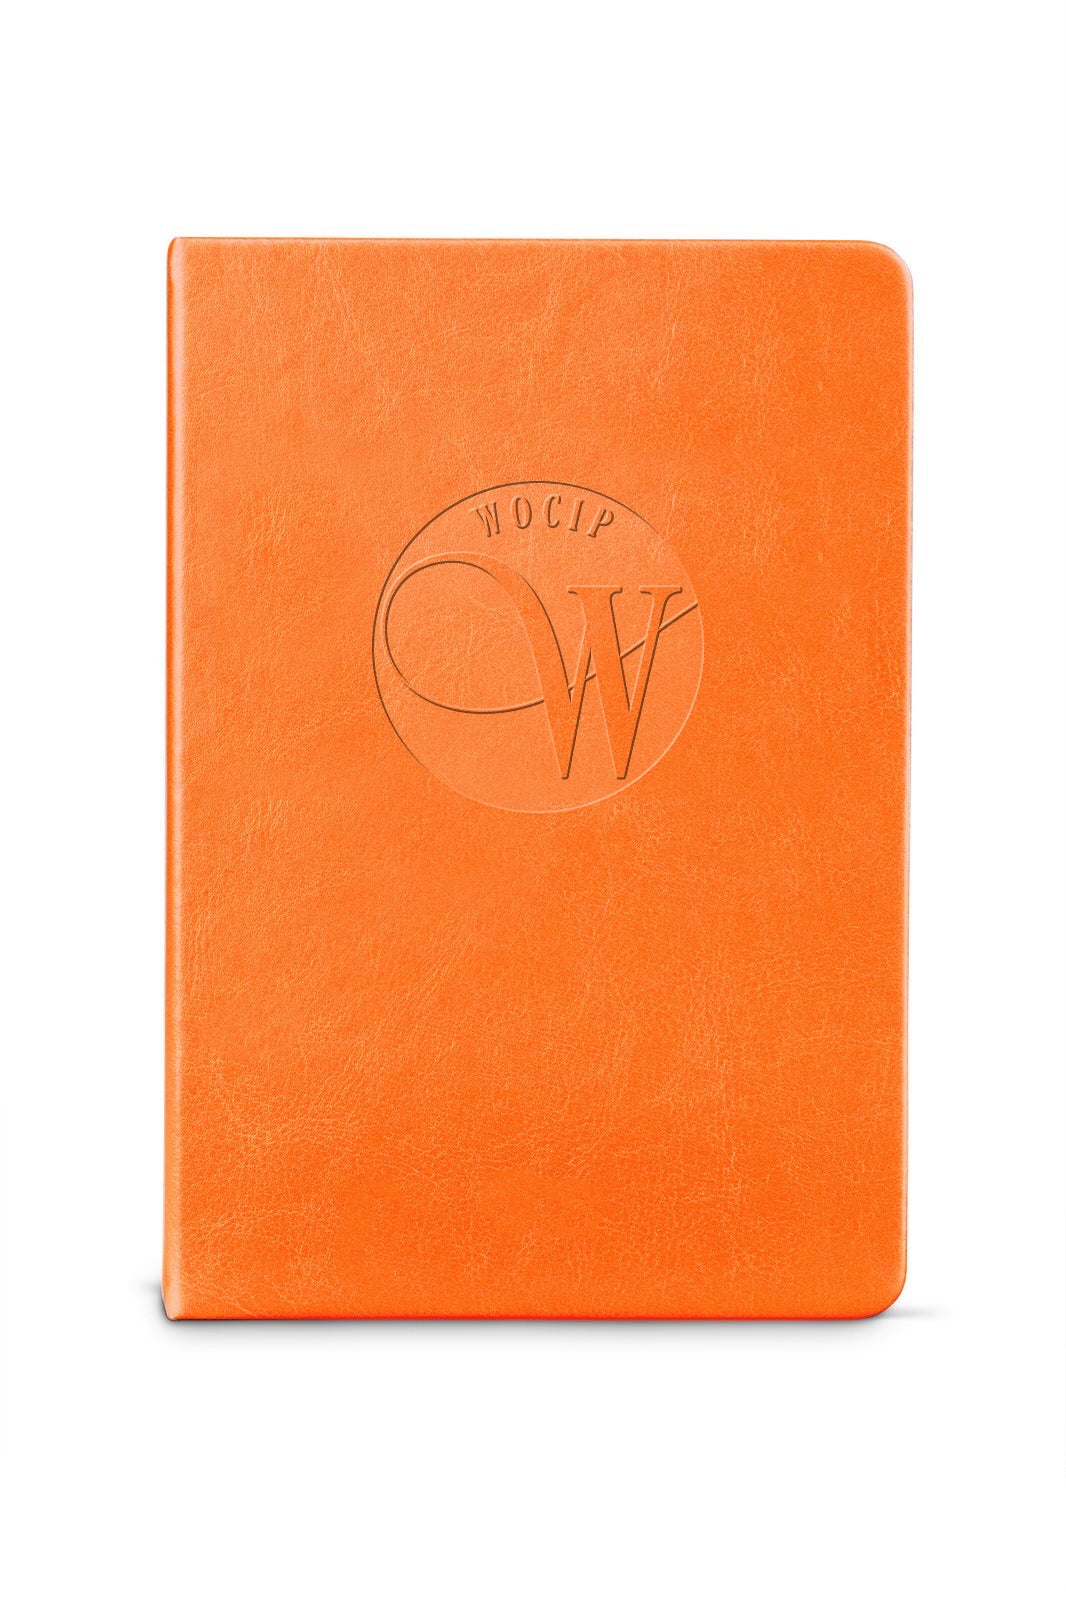 90X® Custom Planner with your LOGO {Branded}